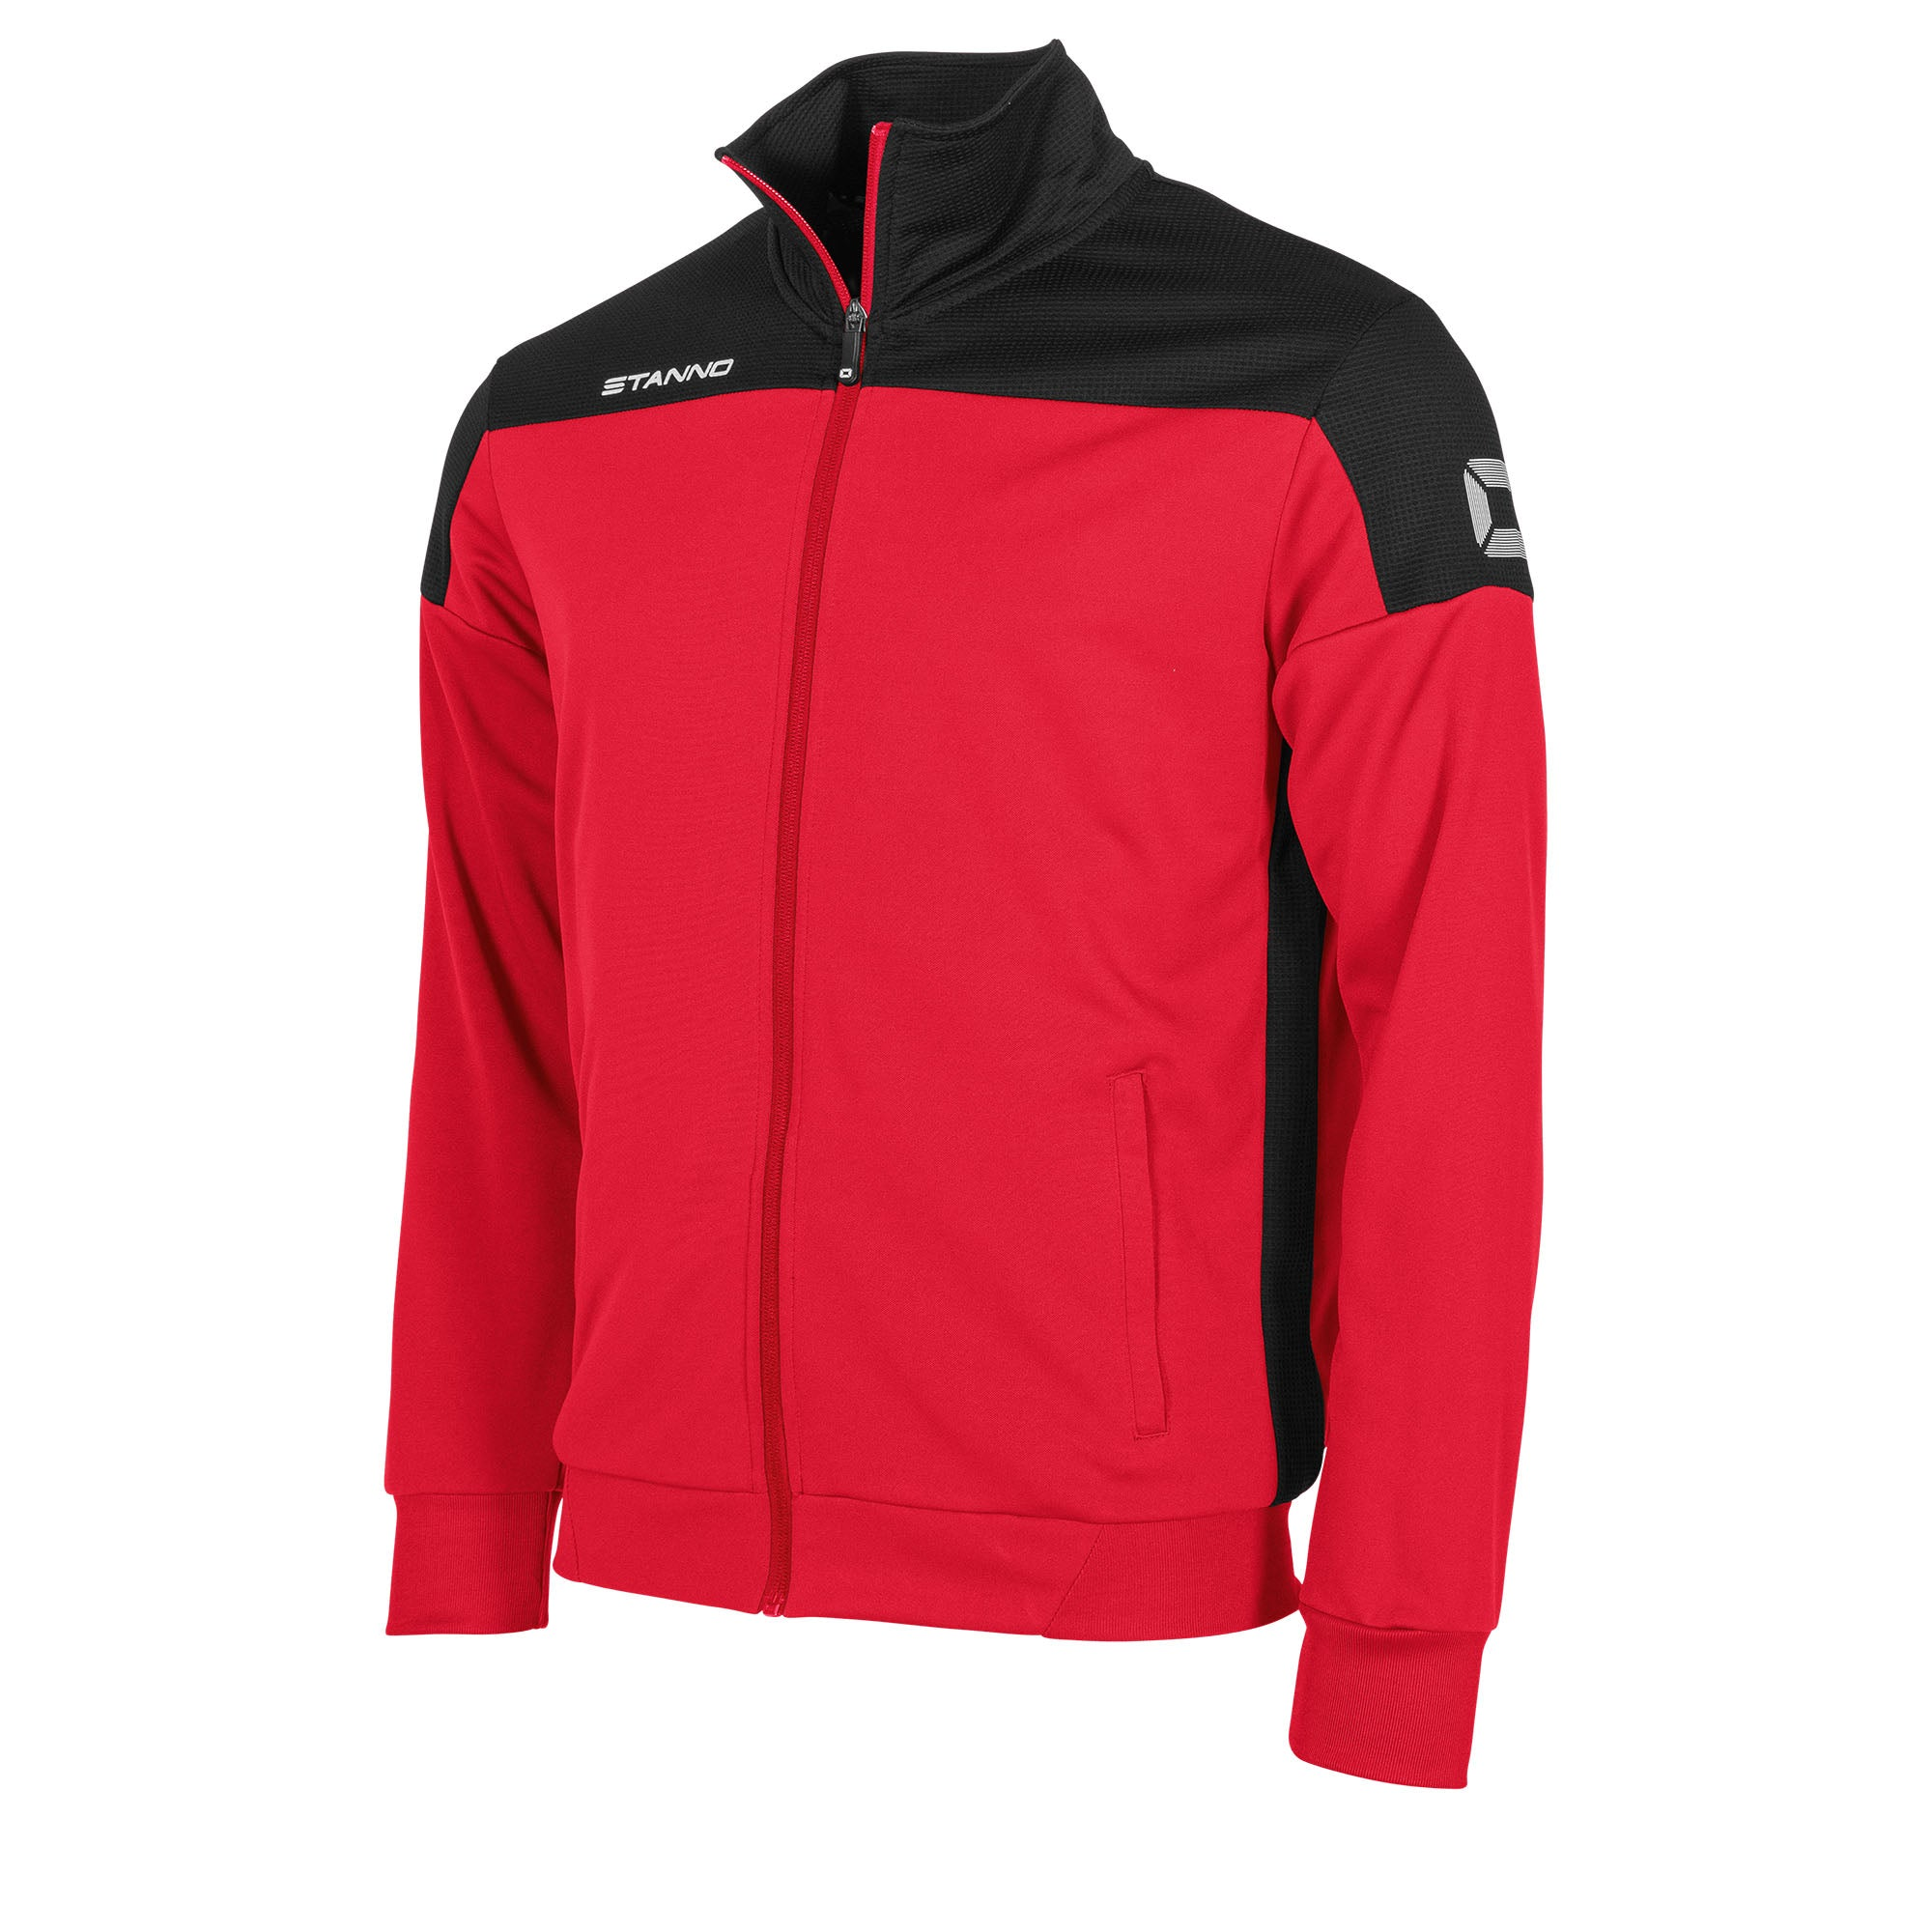 Stanno Pride TTS Jacket full zip in red with black contrast shoulders